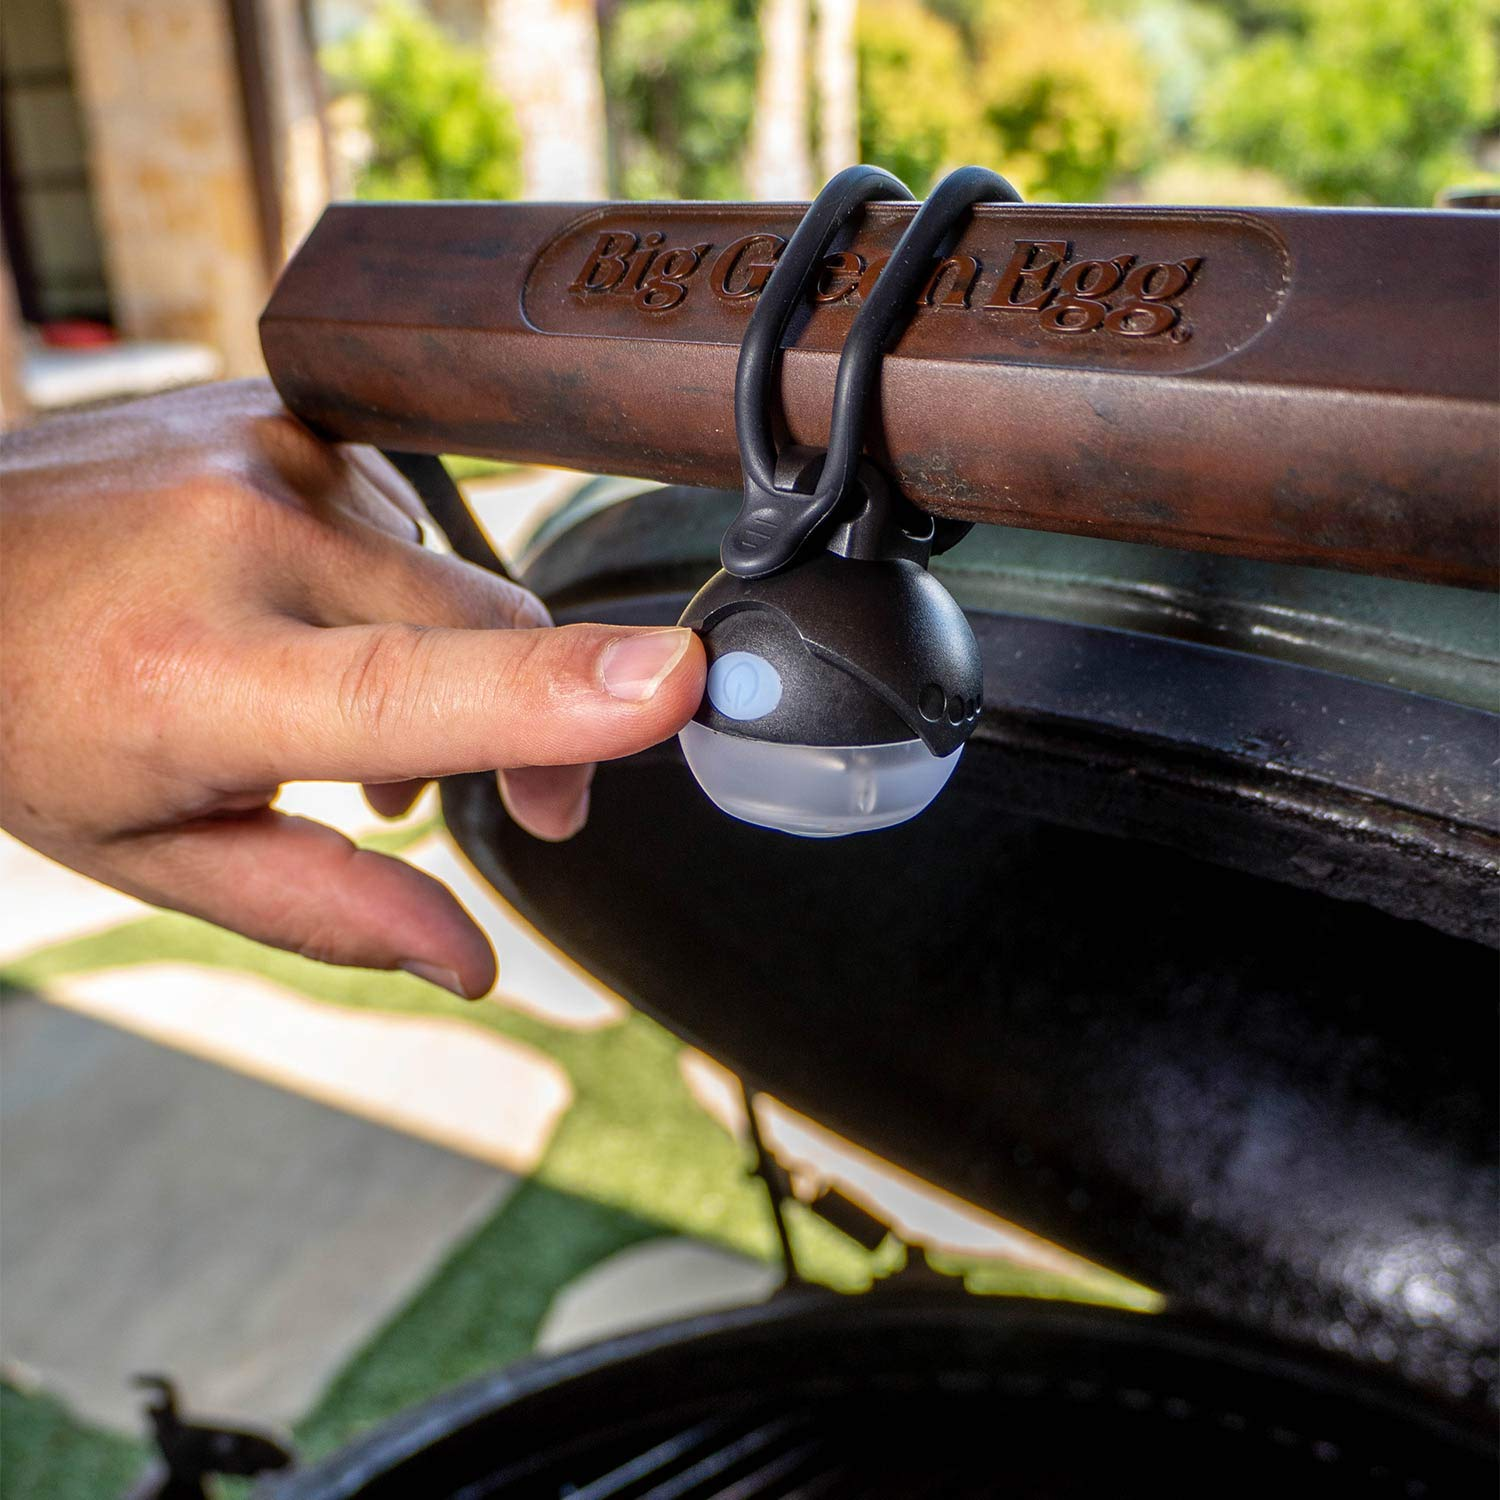 EggXotic Light for Big Green Egg - A Rechargeable, Rotatable, Bright LED Light That Wraps Around The BGE Handle and Illuminates Your Grill Top (Black)